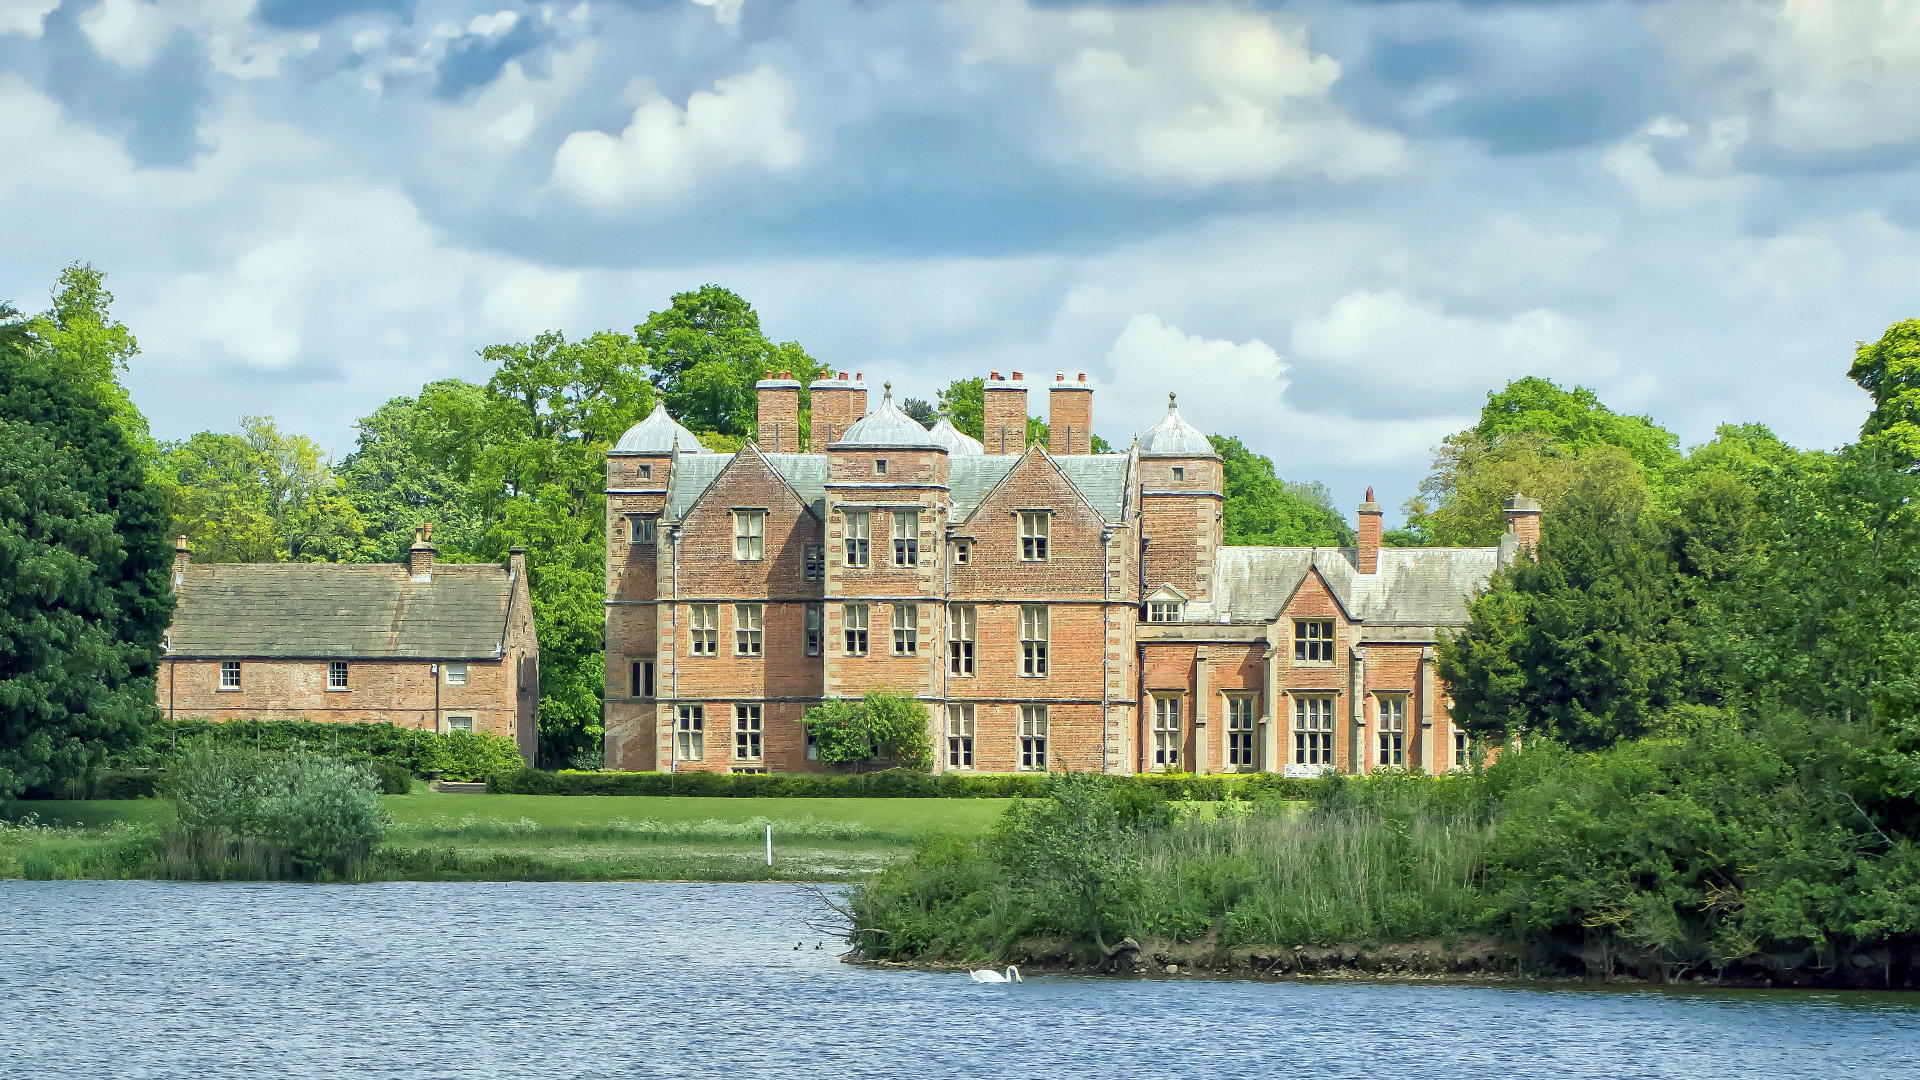 Kiplin Hall pictured across the lake